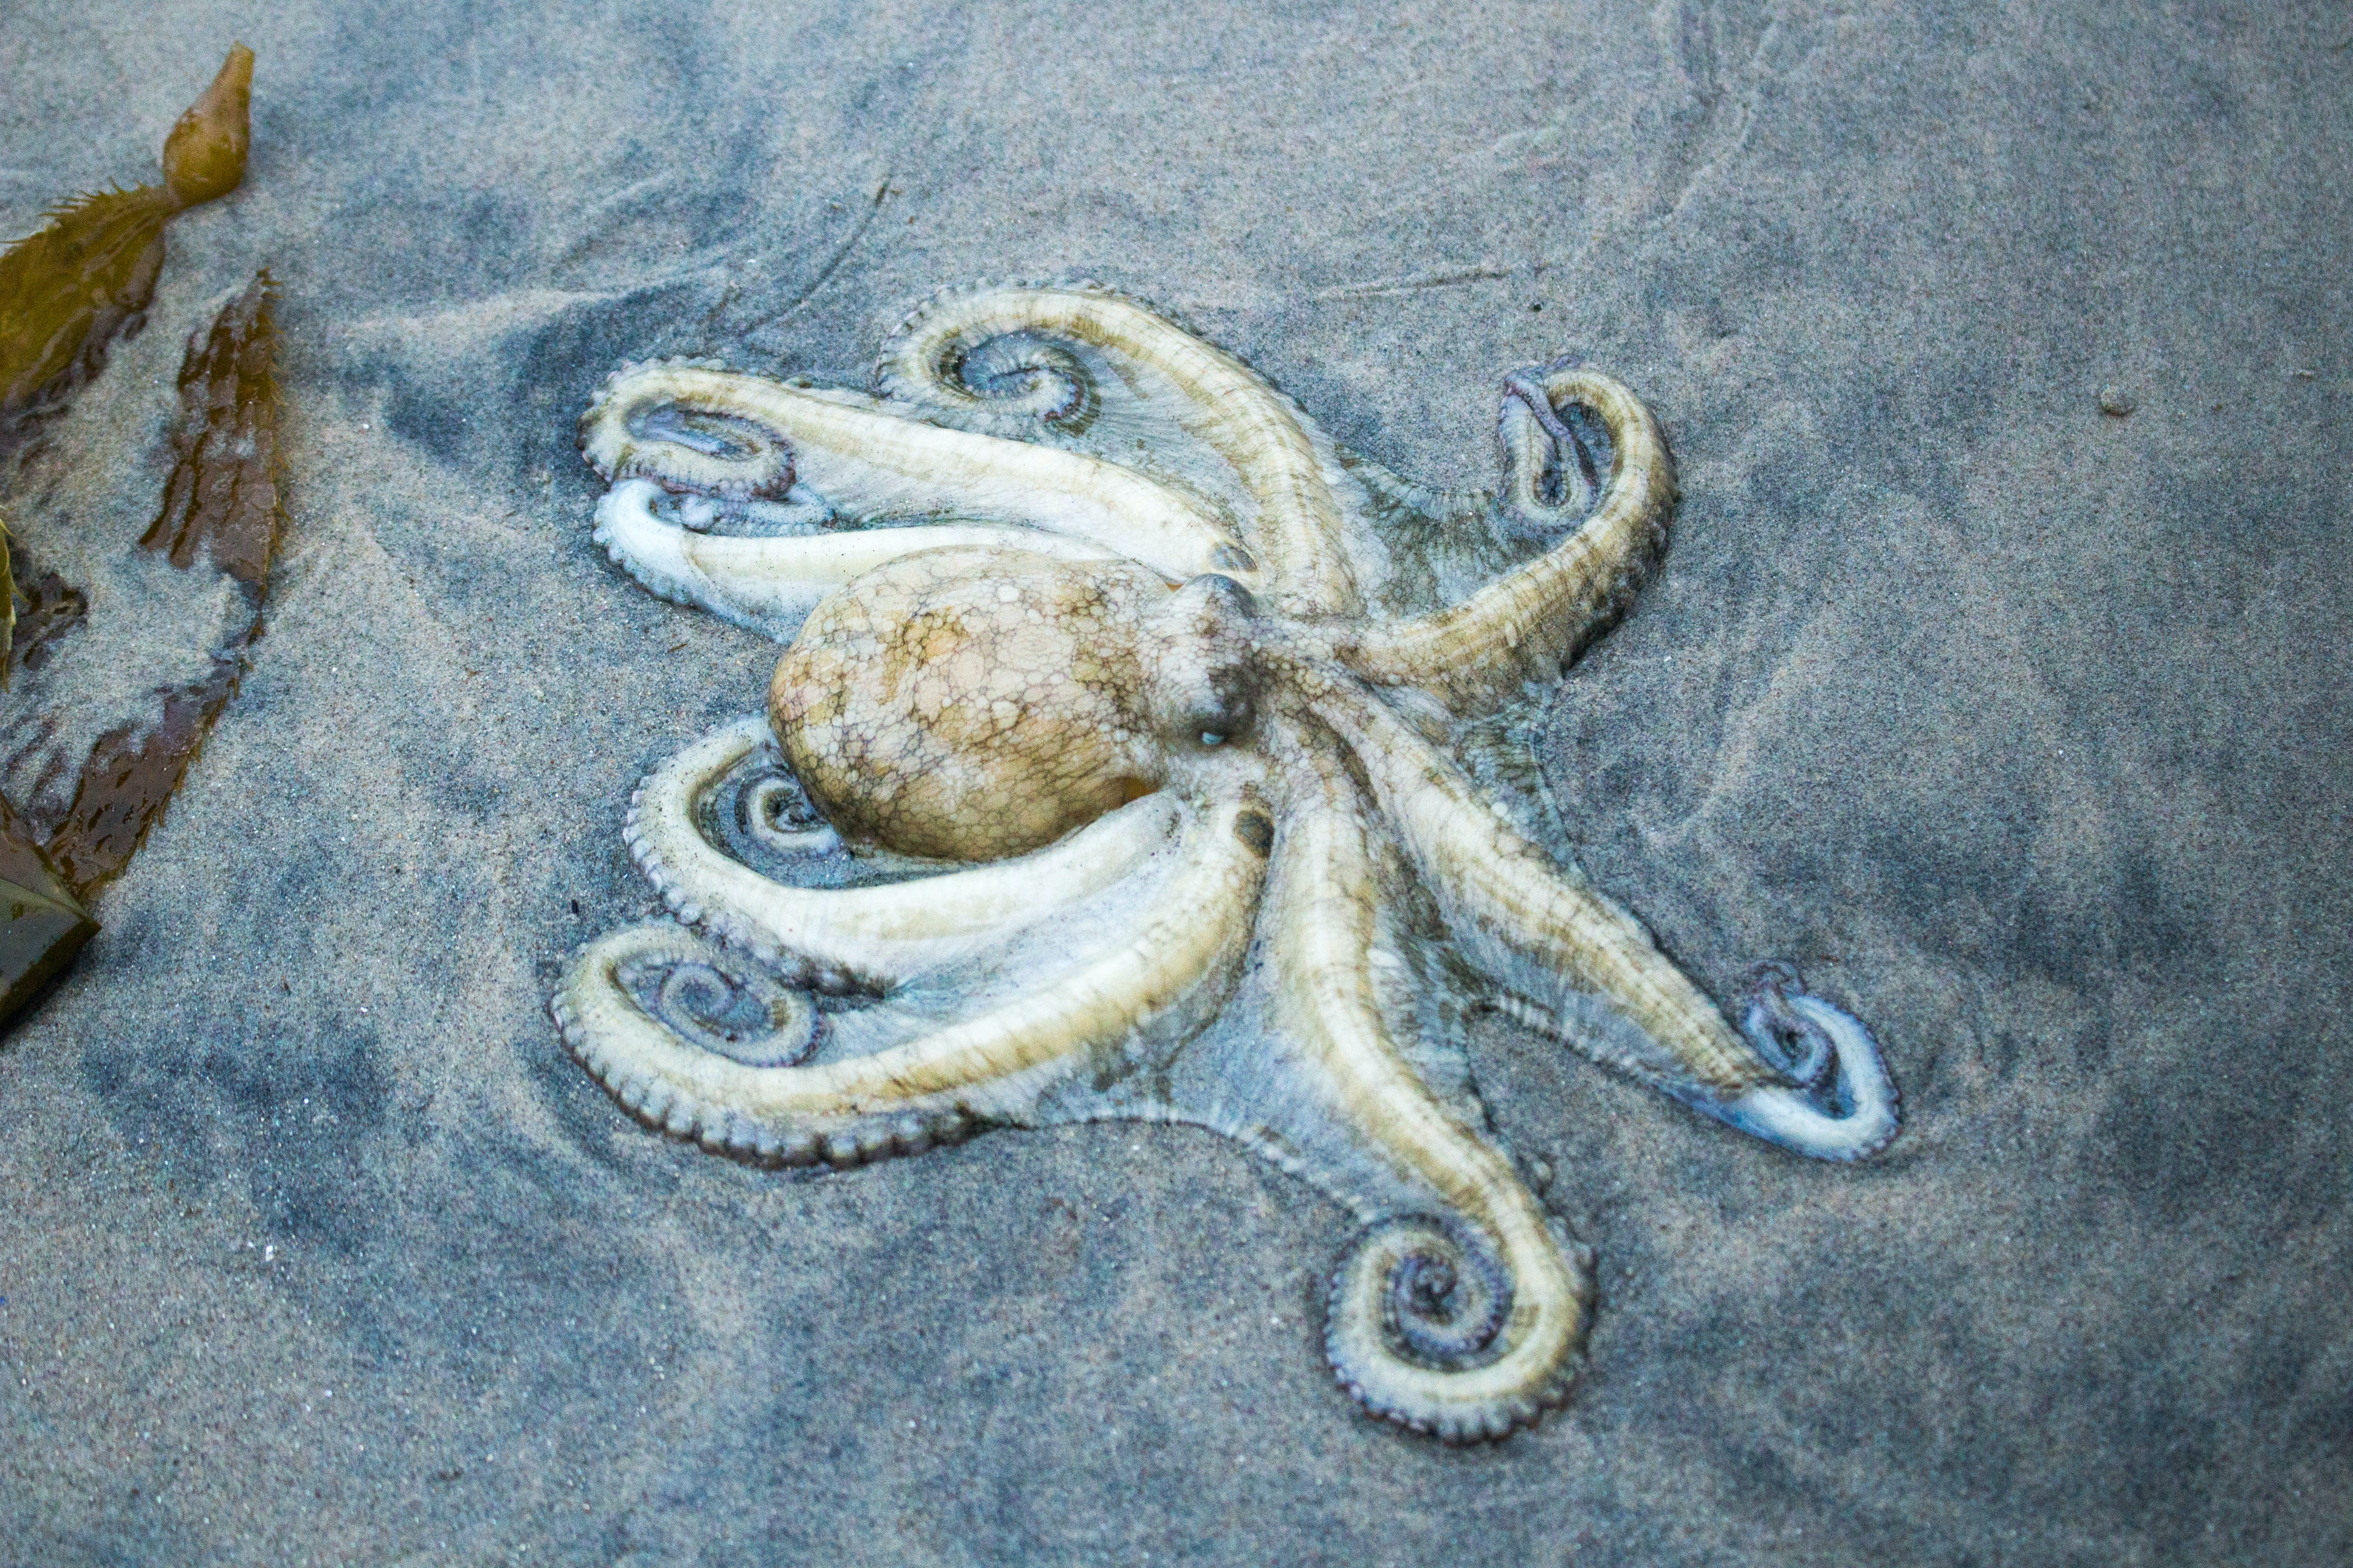 octopuses invade welsh beach u2013 here are the scientific theories why